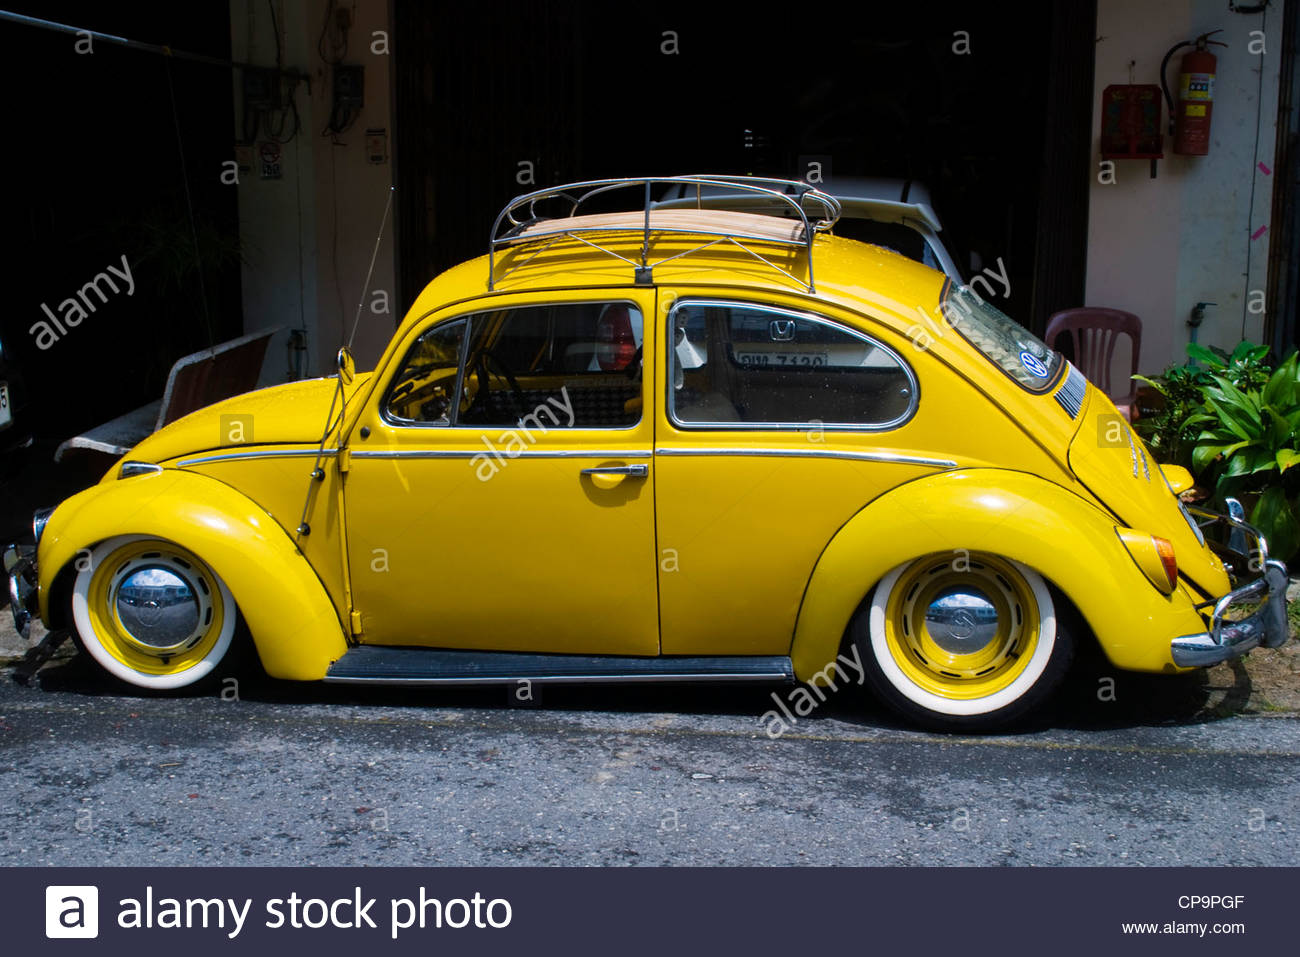 old yellow beetle car images galleries with a bite. Black Bedroom Furniture Sets. Home Design Ideas